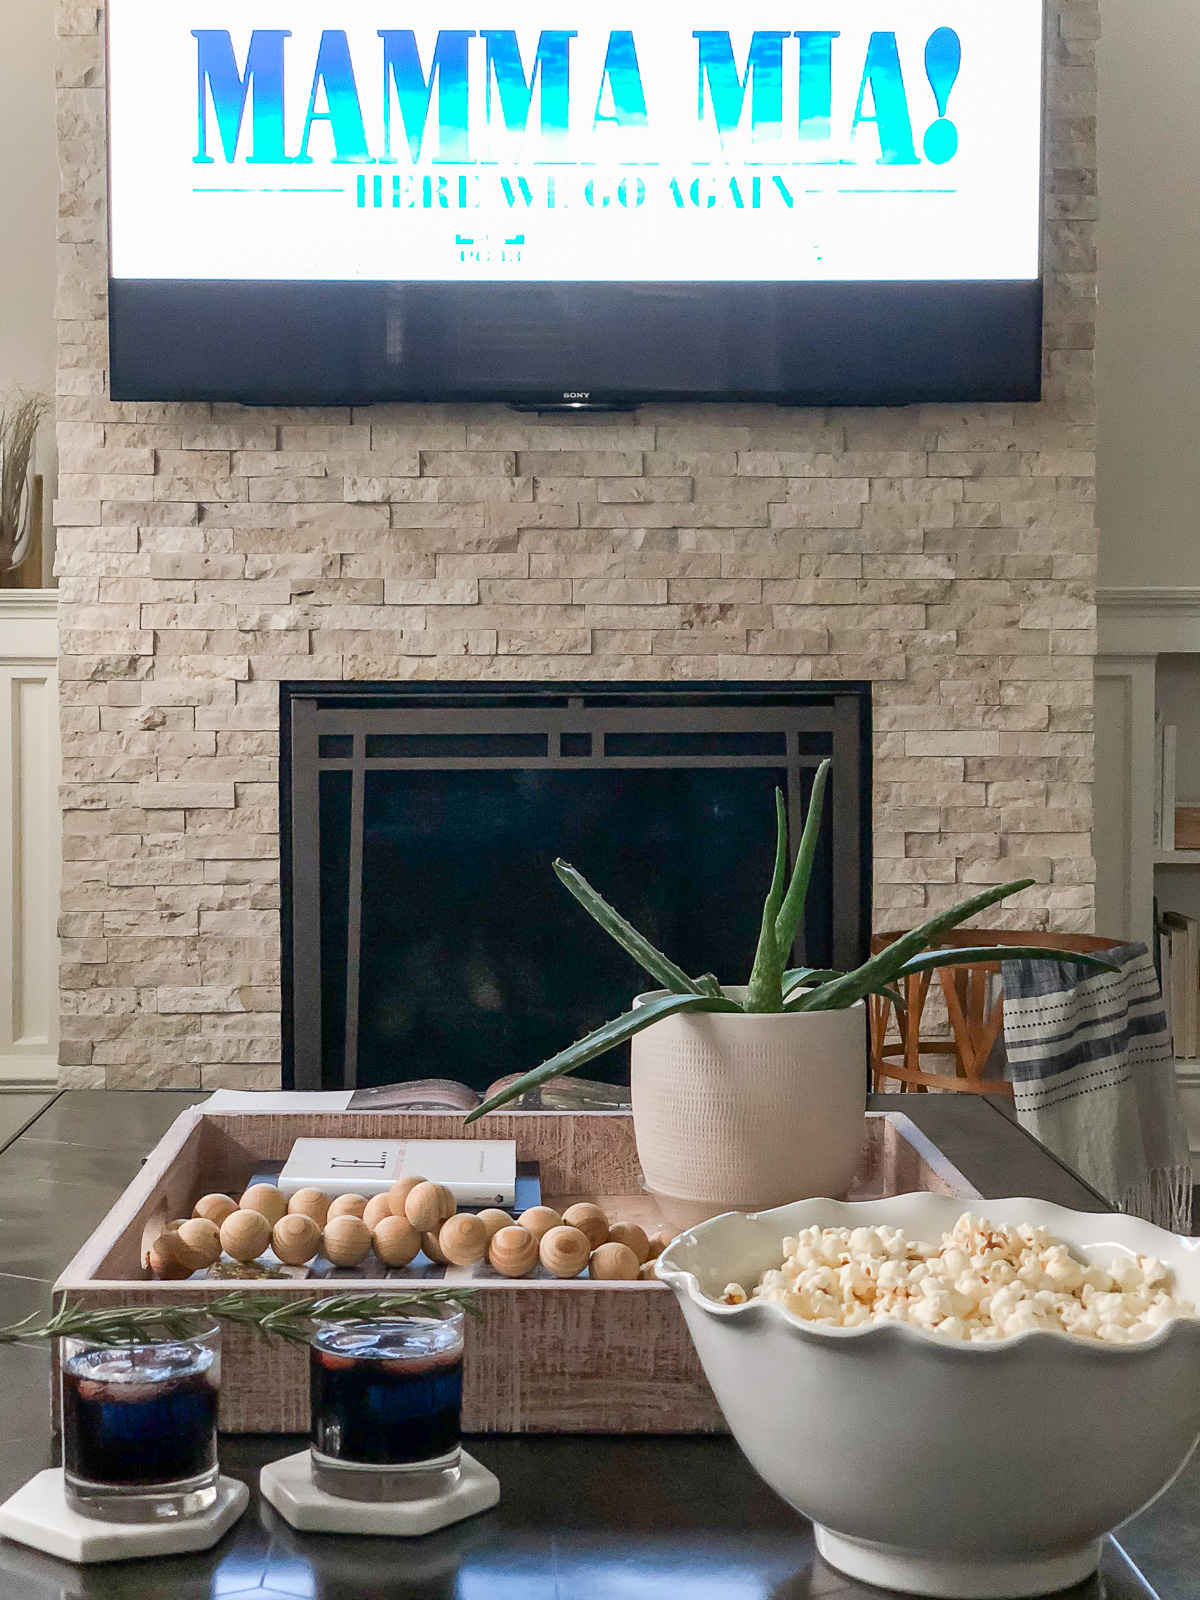 What better way to celebrate than to plan a Mamma Mia! Movie Night In with a healthy Greek inspired menu {AIP, Paleo, Whole 30} that's easy to prepare!